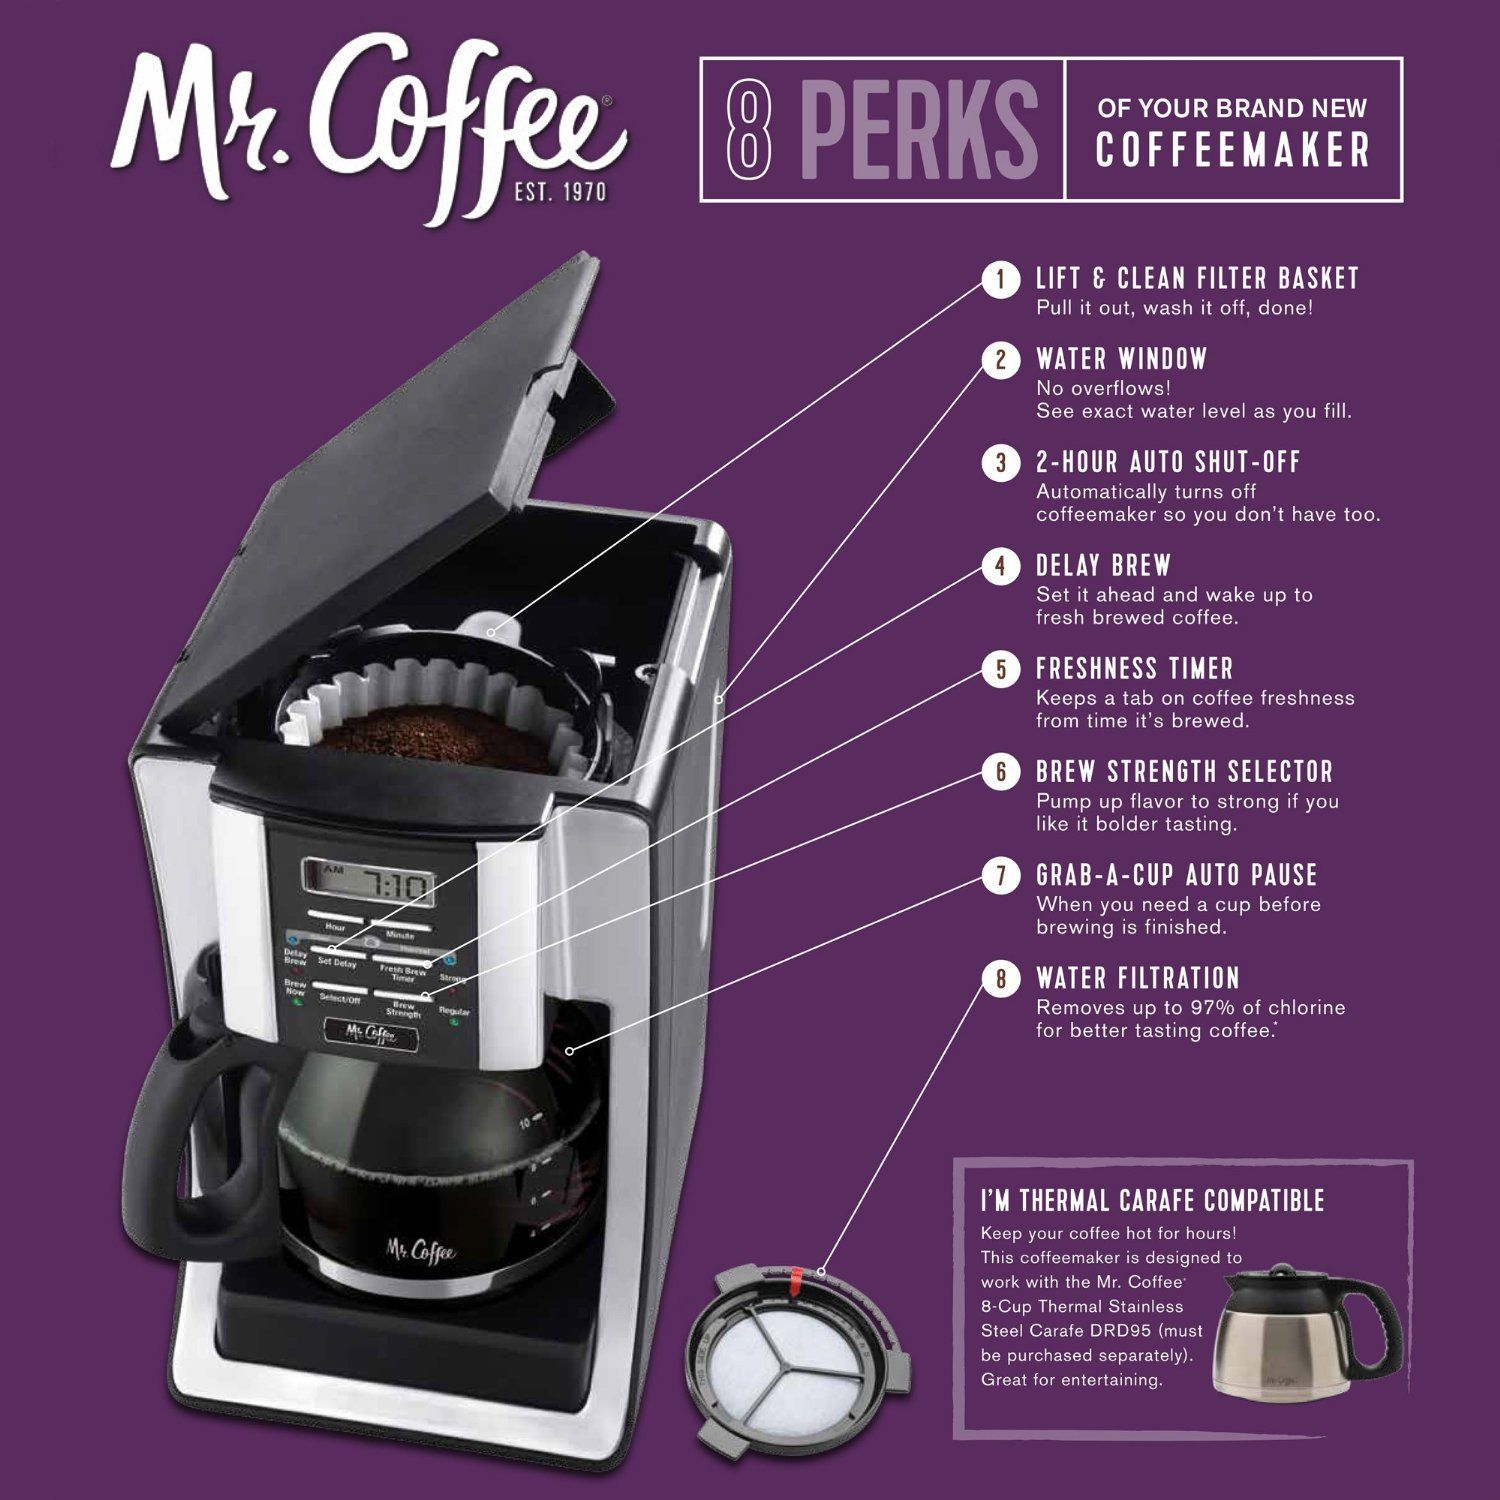 Mr. Coffee BVMC-SJX33GT 12-Cup Programmable Coffeemaker,